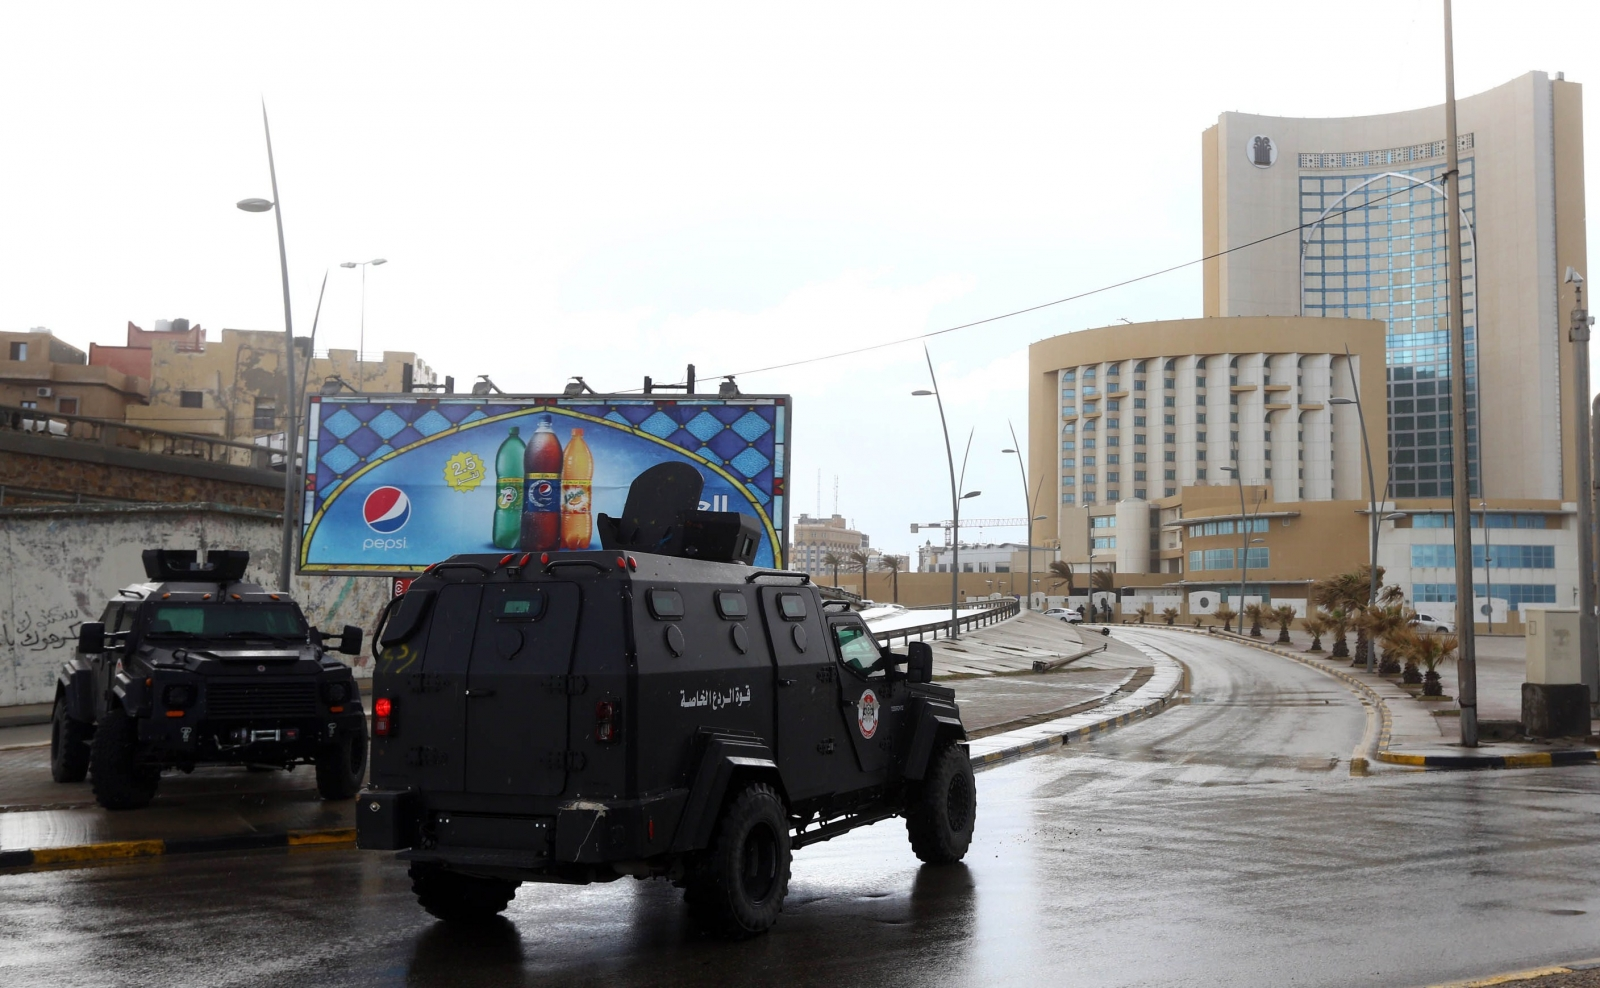 Libyan security forces and emergency services surround Tripoli's central Corinthia Hotel (R) on January 27, 2015 in the Libyan capital